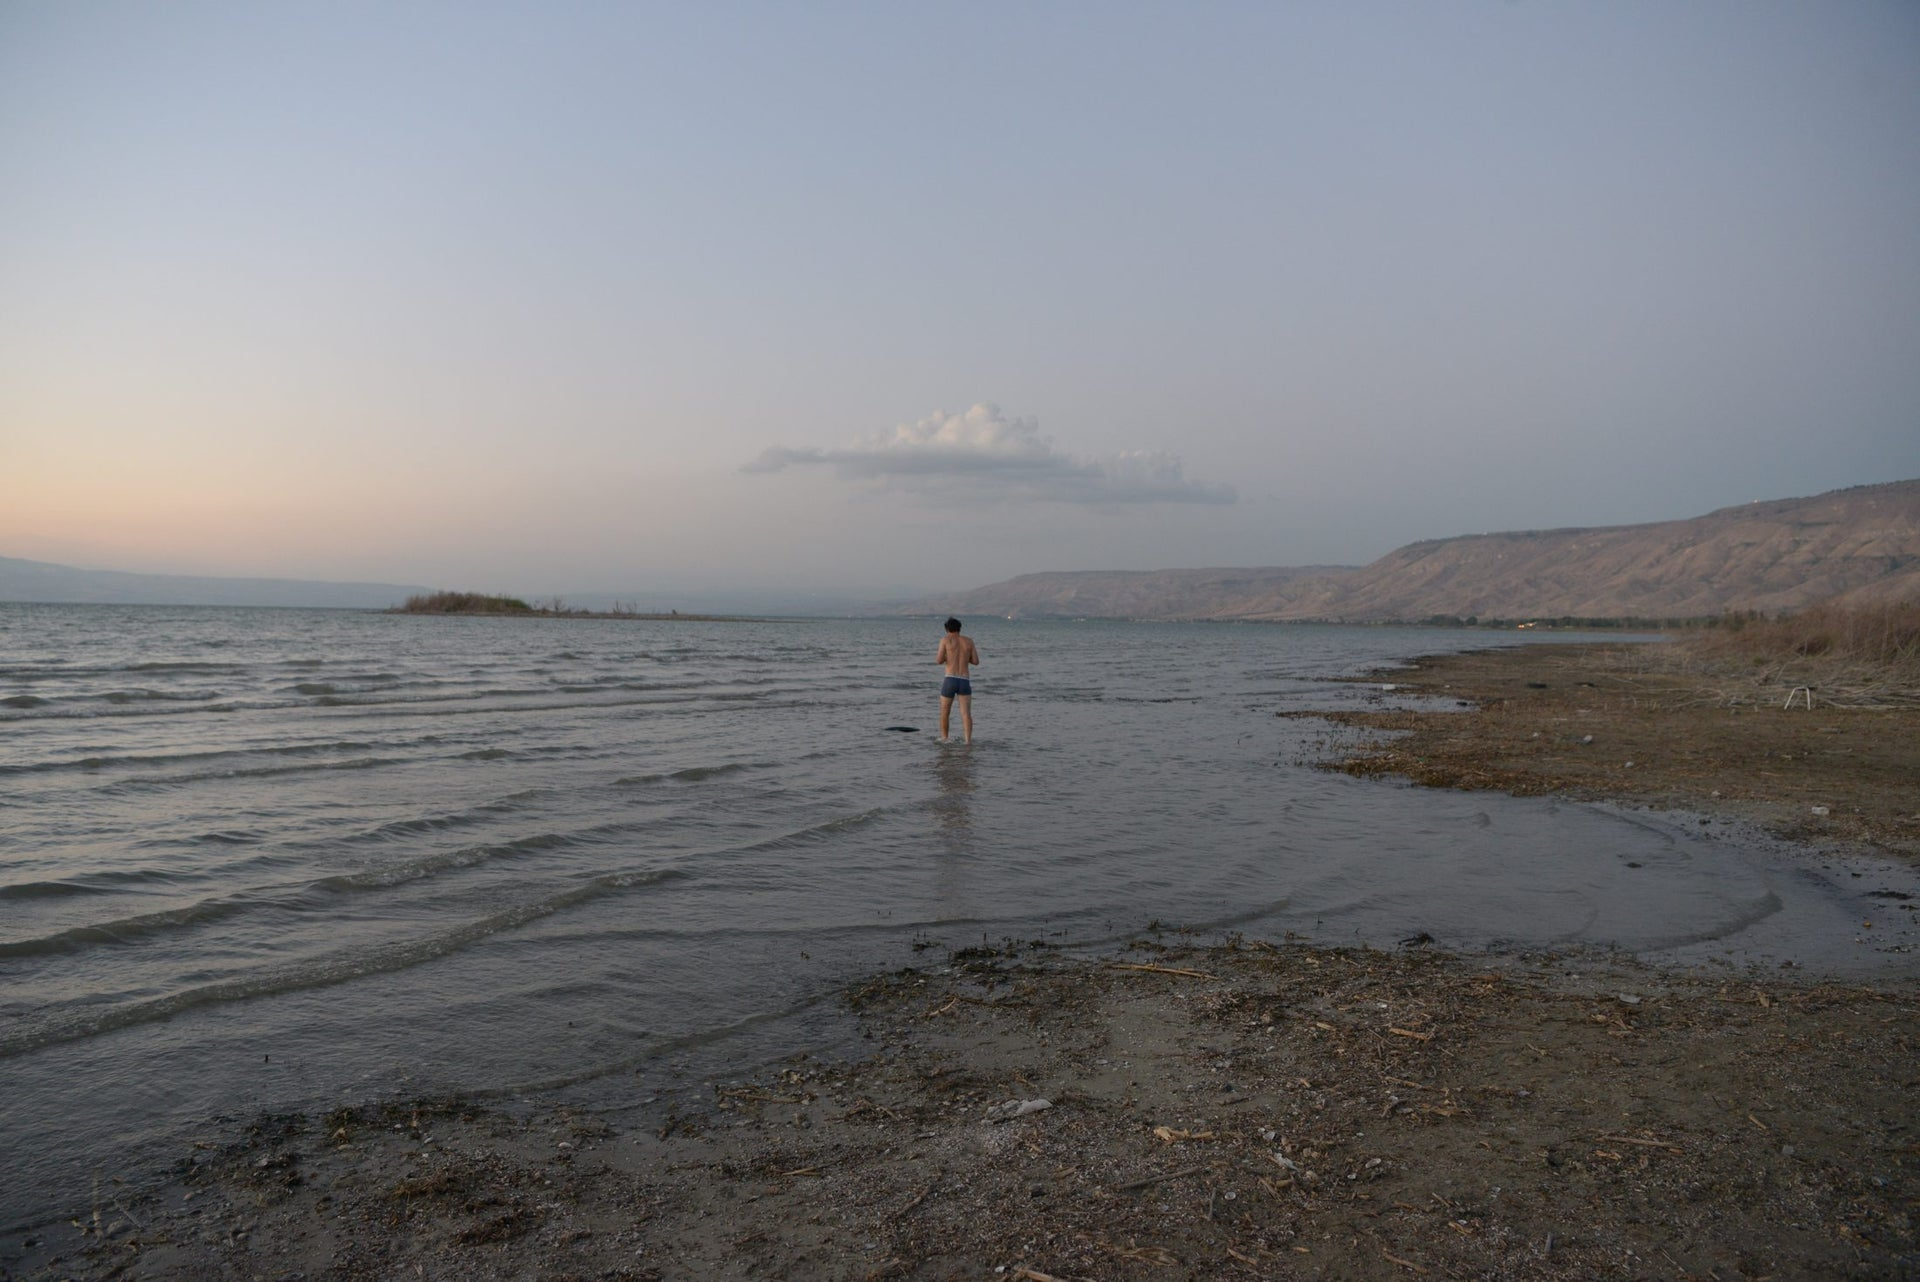 A bather in Lake Kinneret, September 2016. In the background is an island created as a result of the low water level.